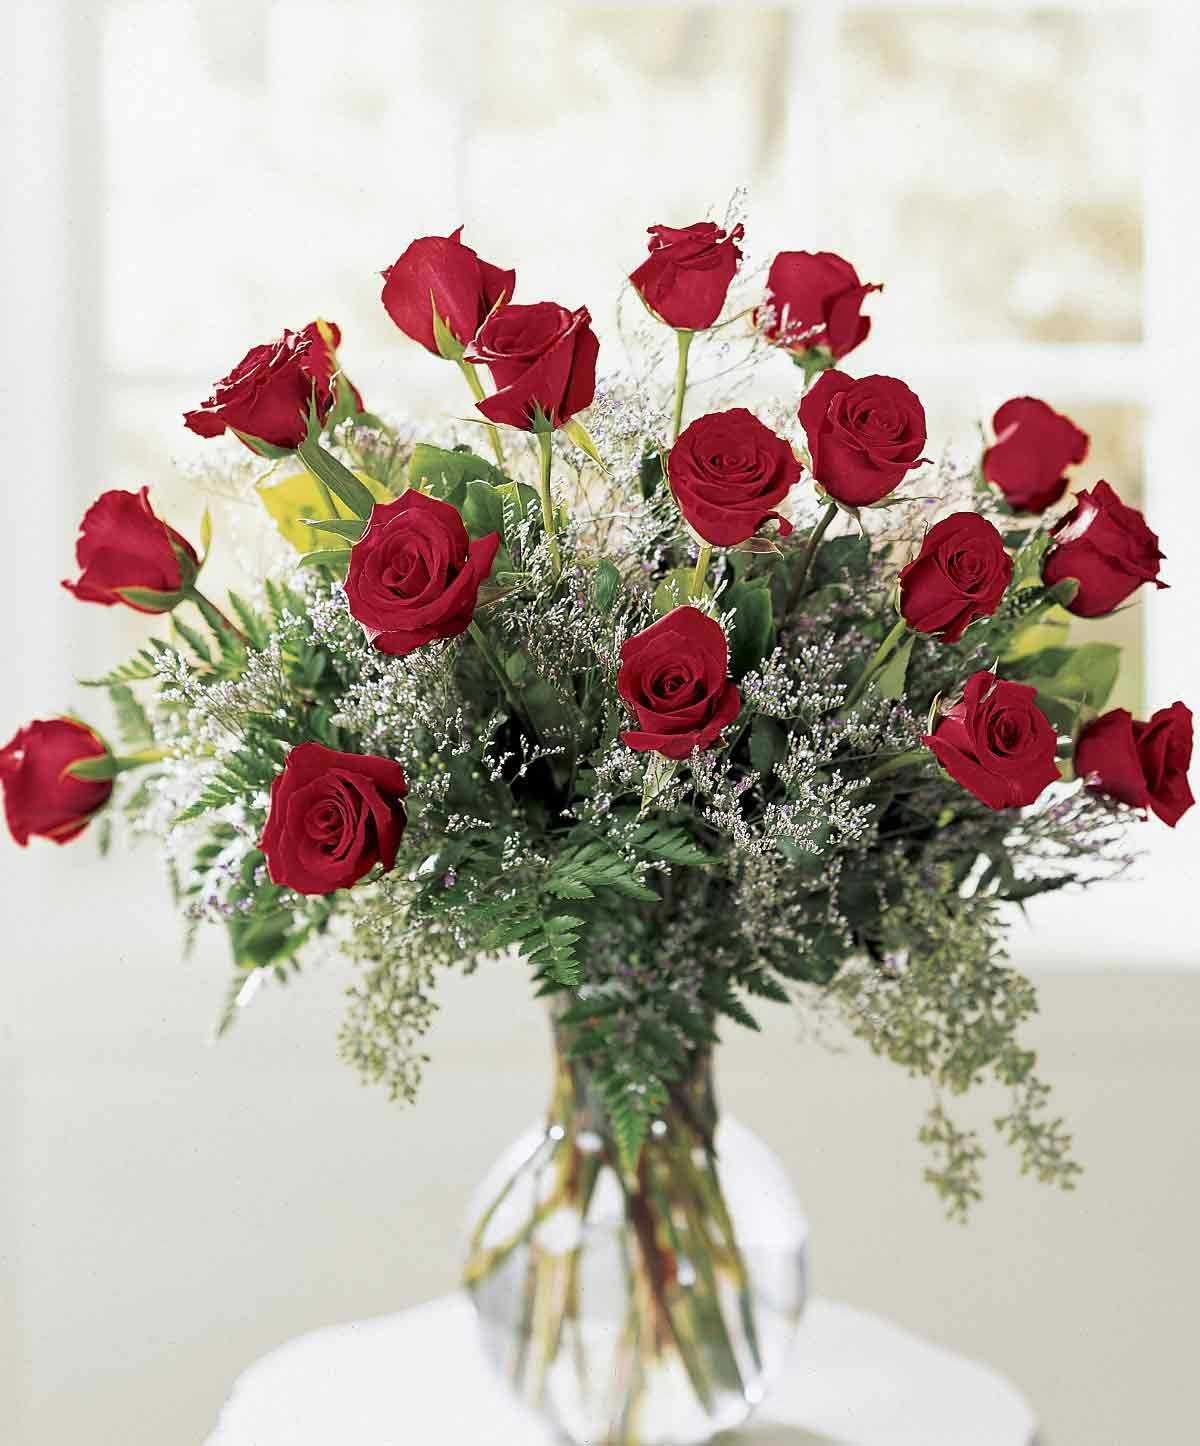 Easy valentines day bouquets flowers cute valentines day valentine easy valentines day bouquets flowers cute valentines day valentine flowers free valentine izmirmasajfo Images